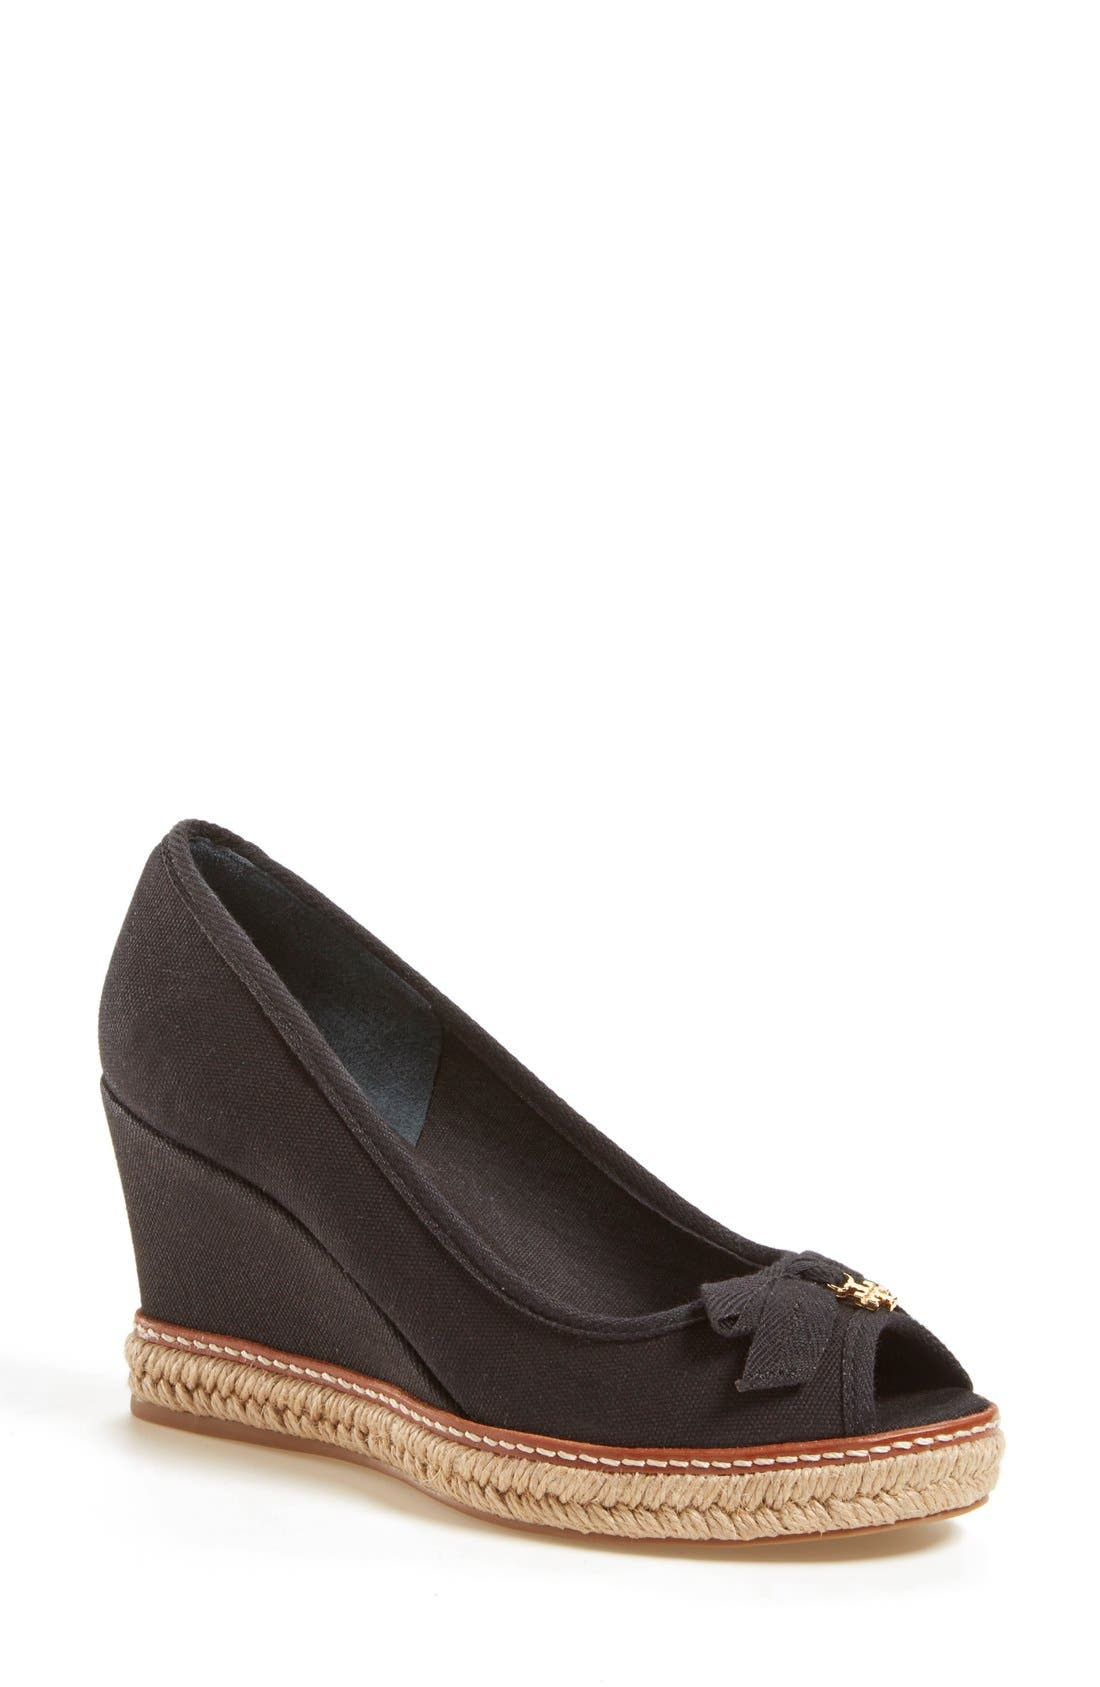 'Jackie 2' Peep Toe Wedge,                             Main thumbnail 1, color,                             Black Canvas/ Grosgrain